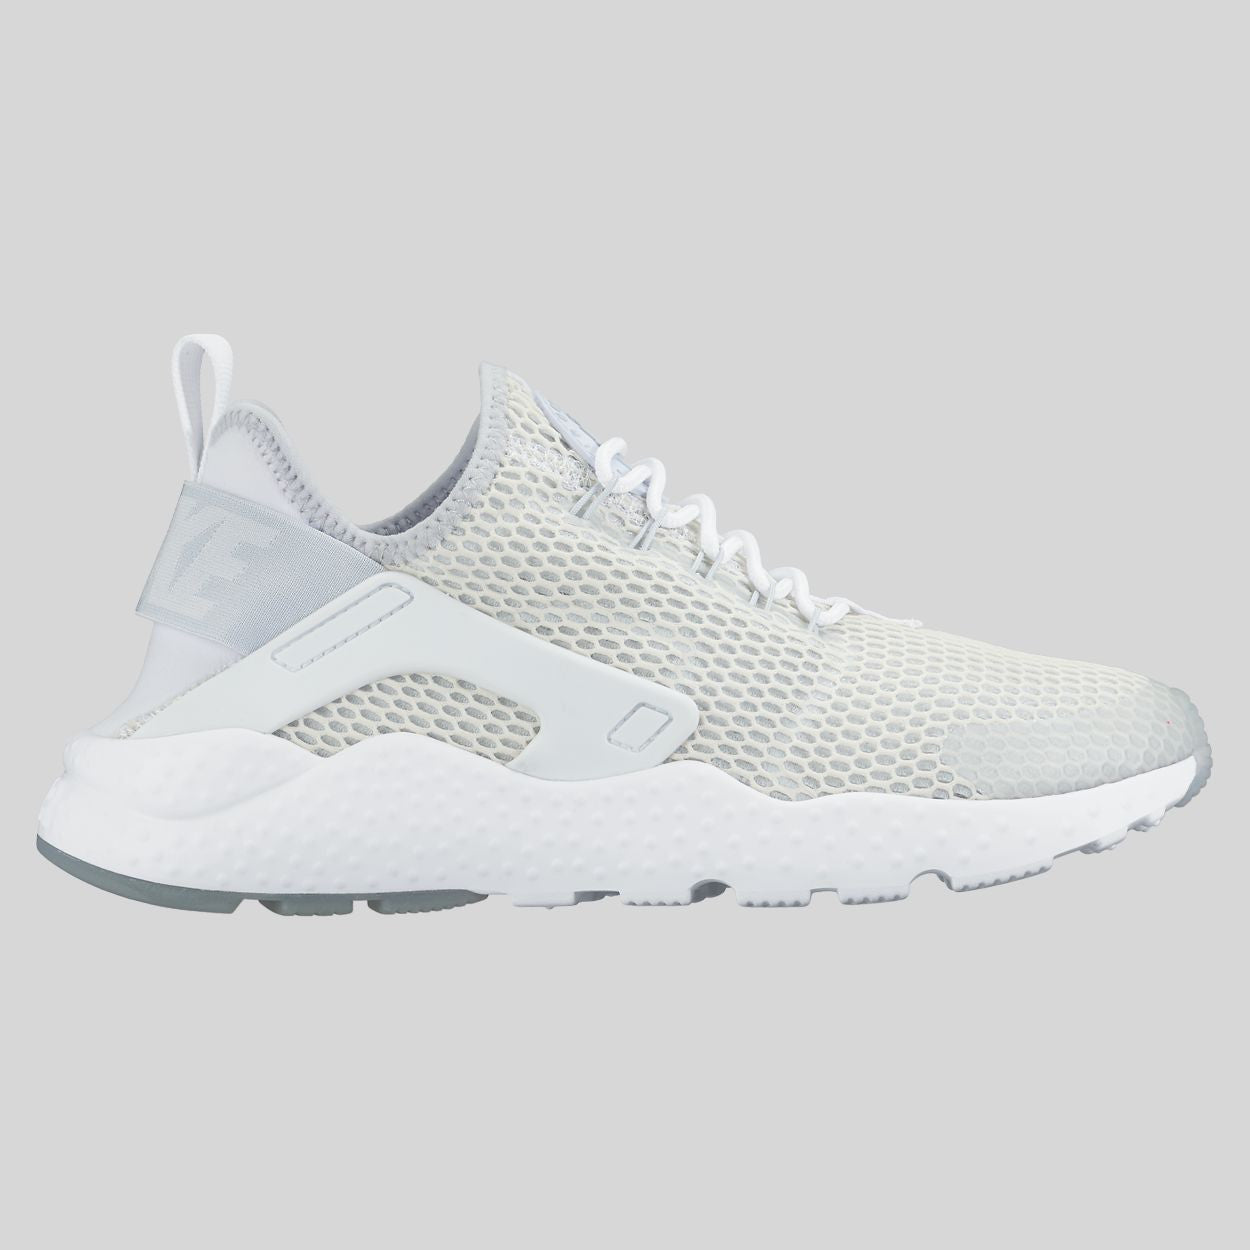 Nike Wmns Air Huarache Run Ultra BR White Pure Platinum (833292-100)